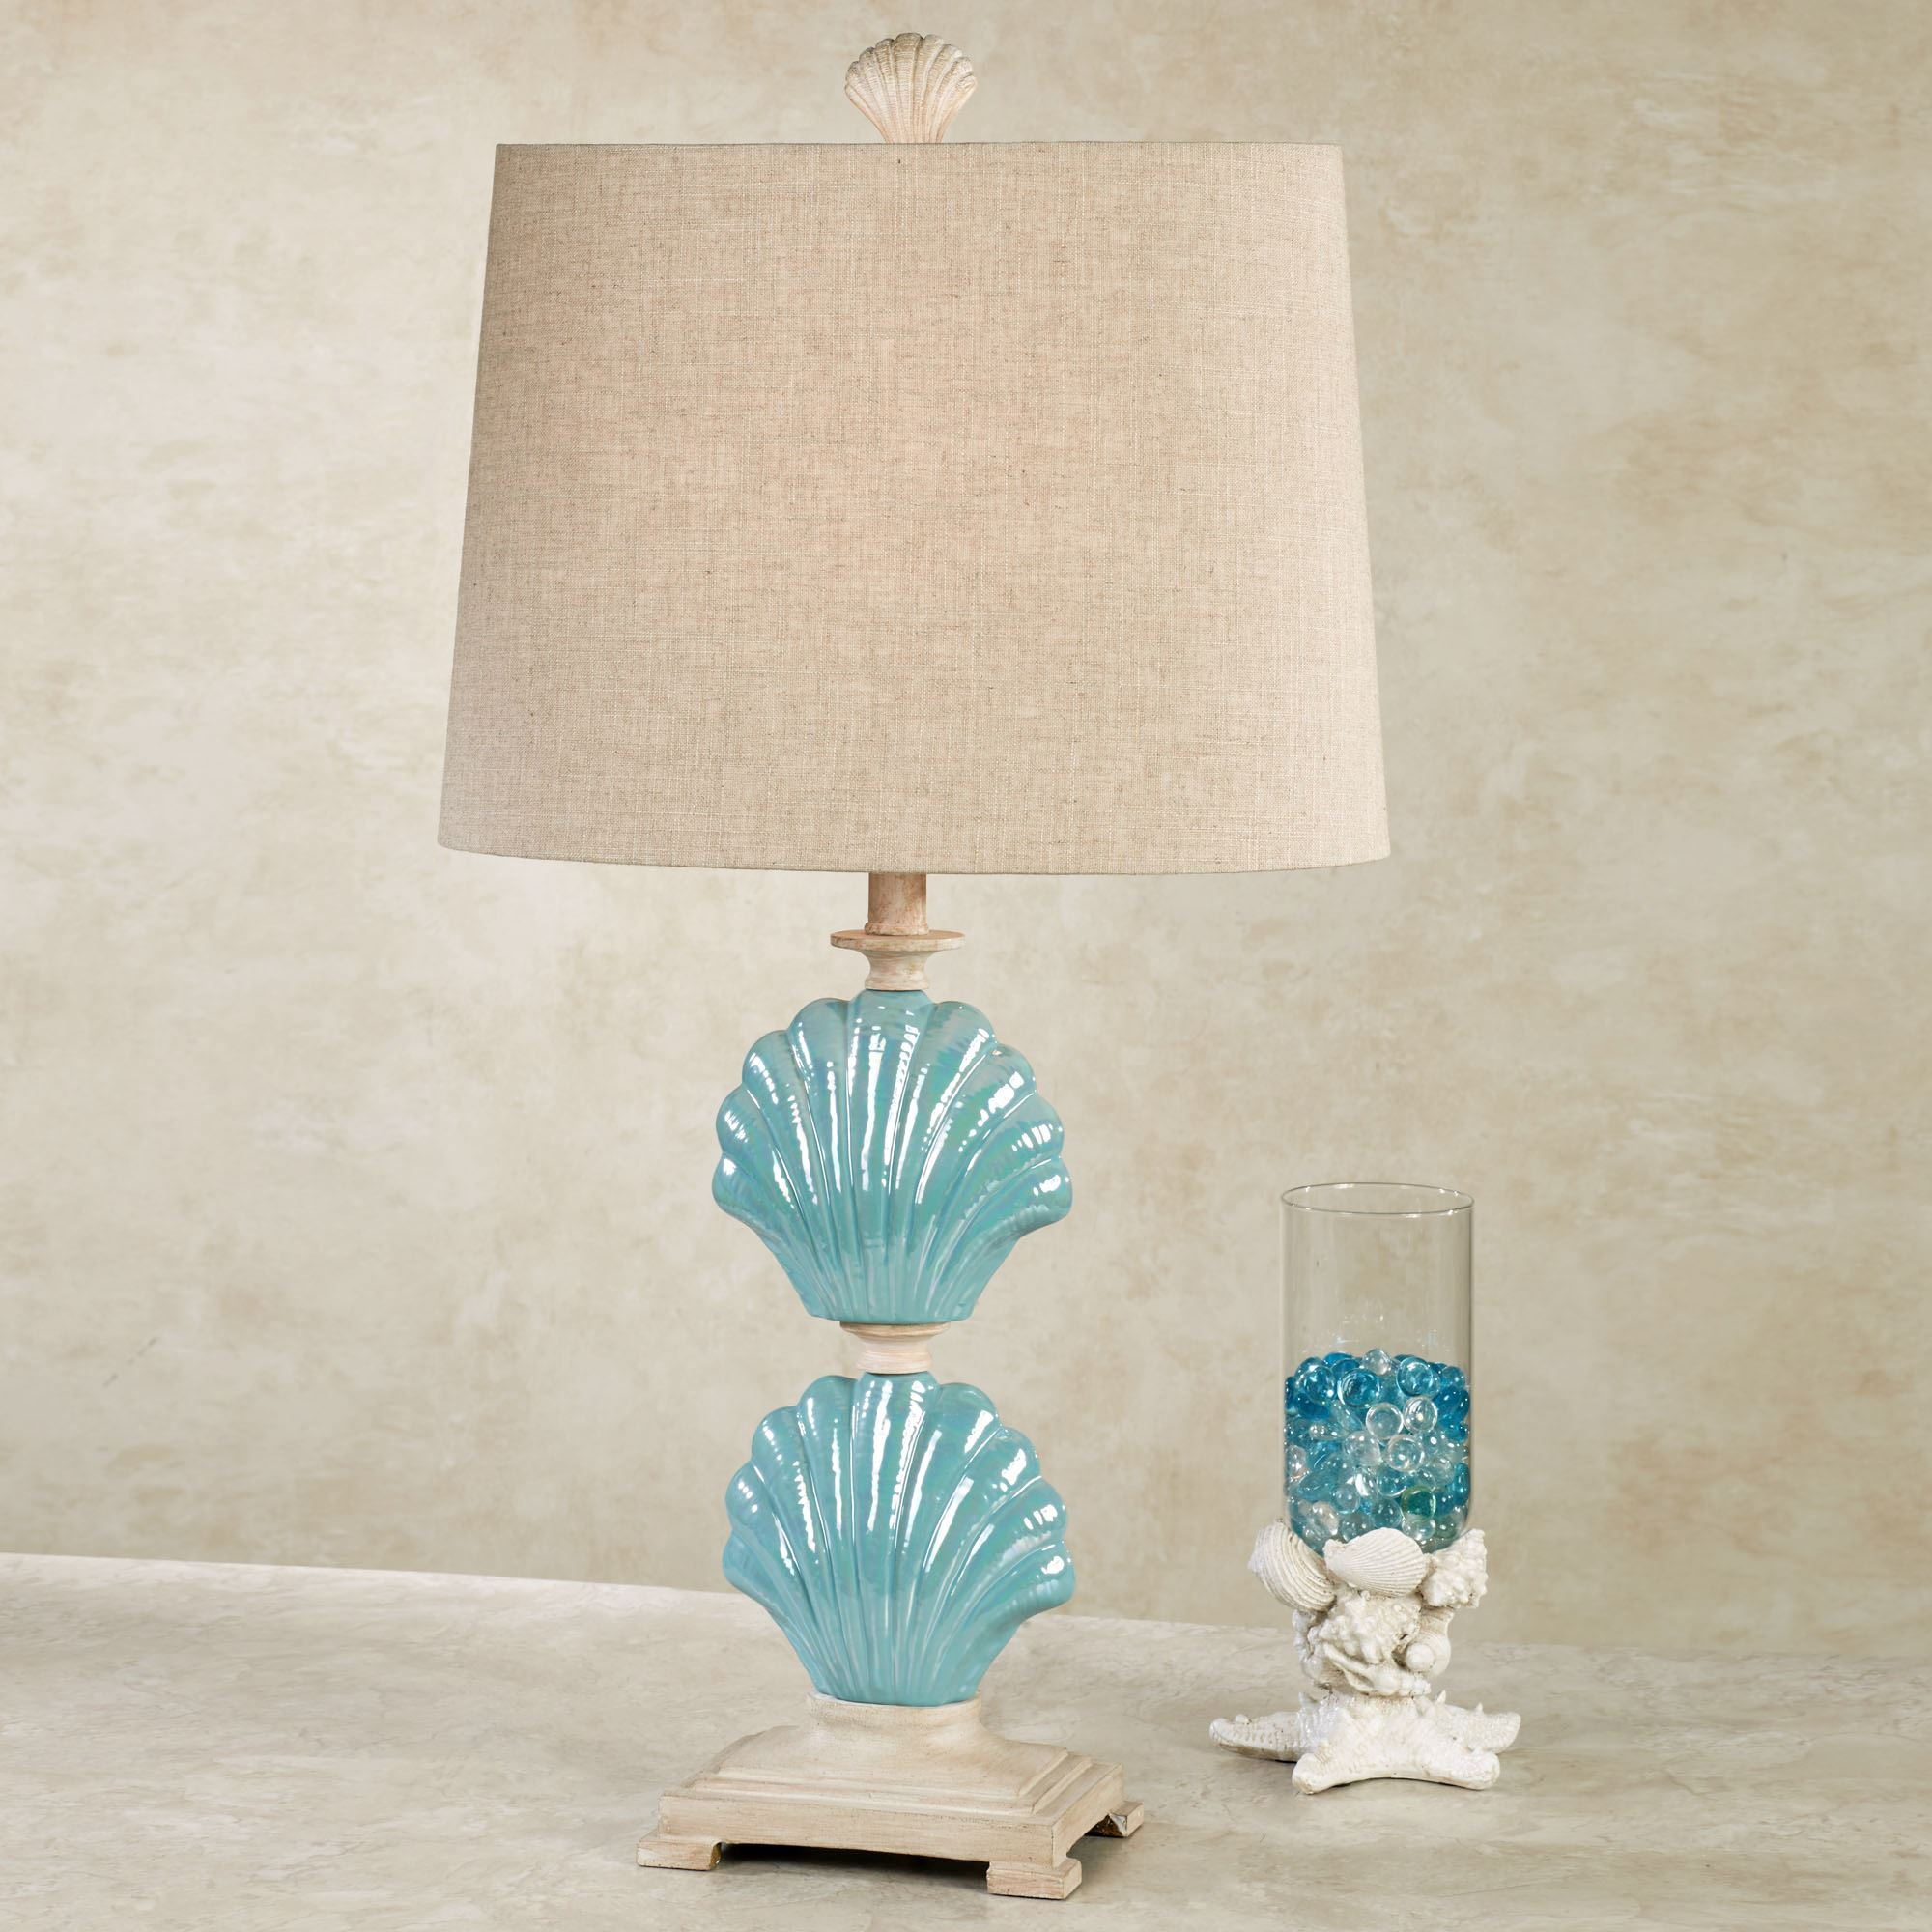 table jrl lamp turquoise multifaceted